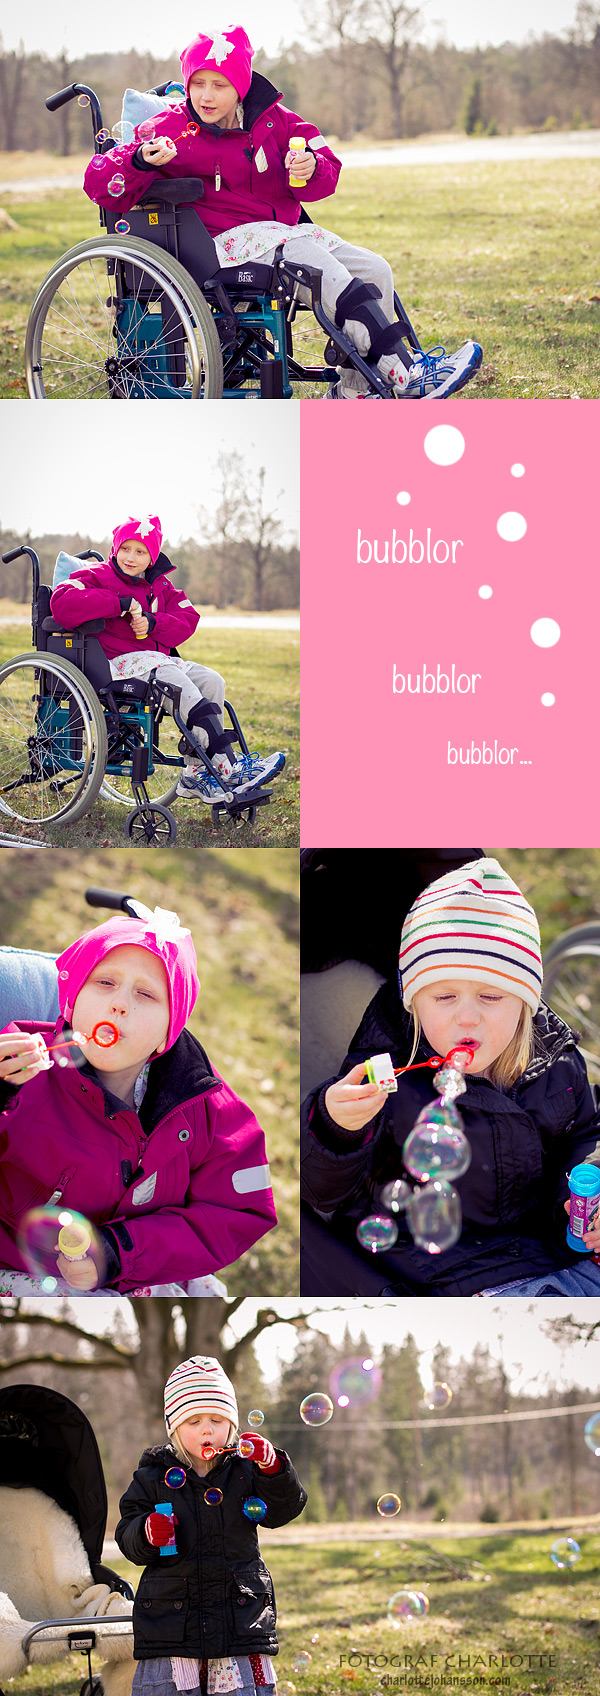 bubblor